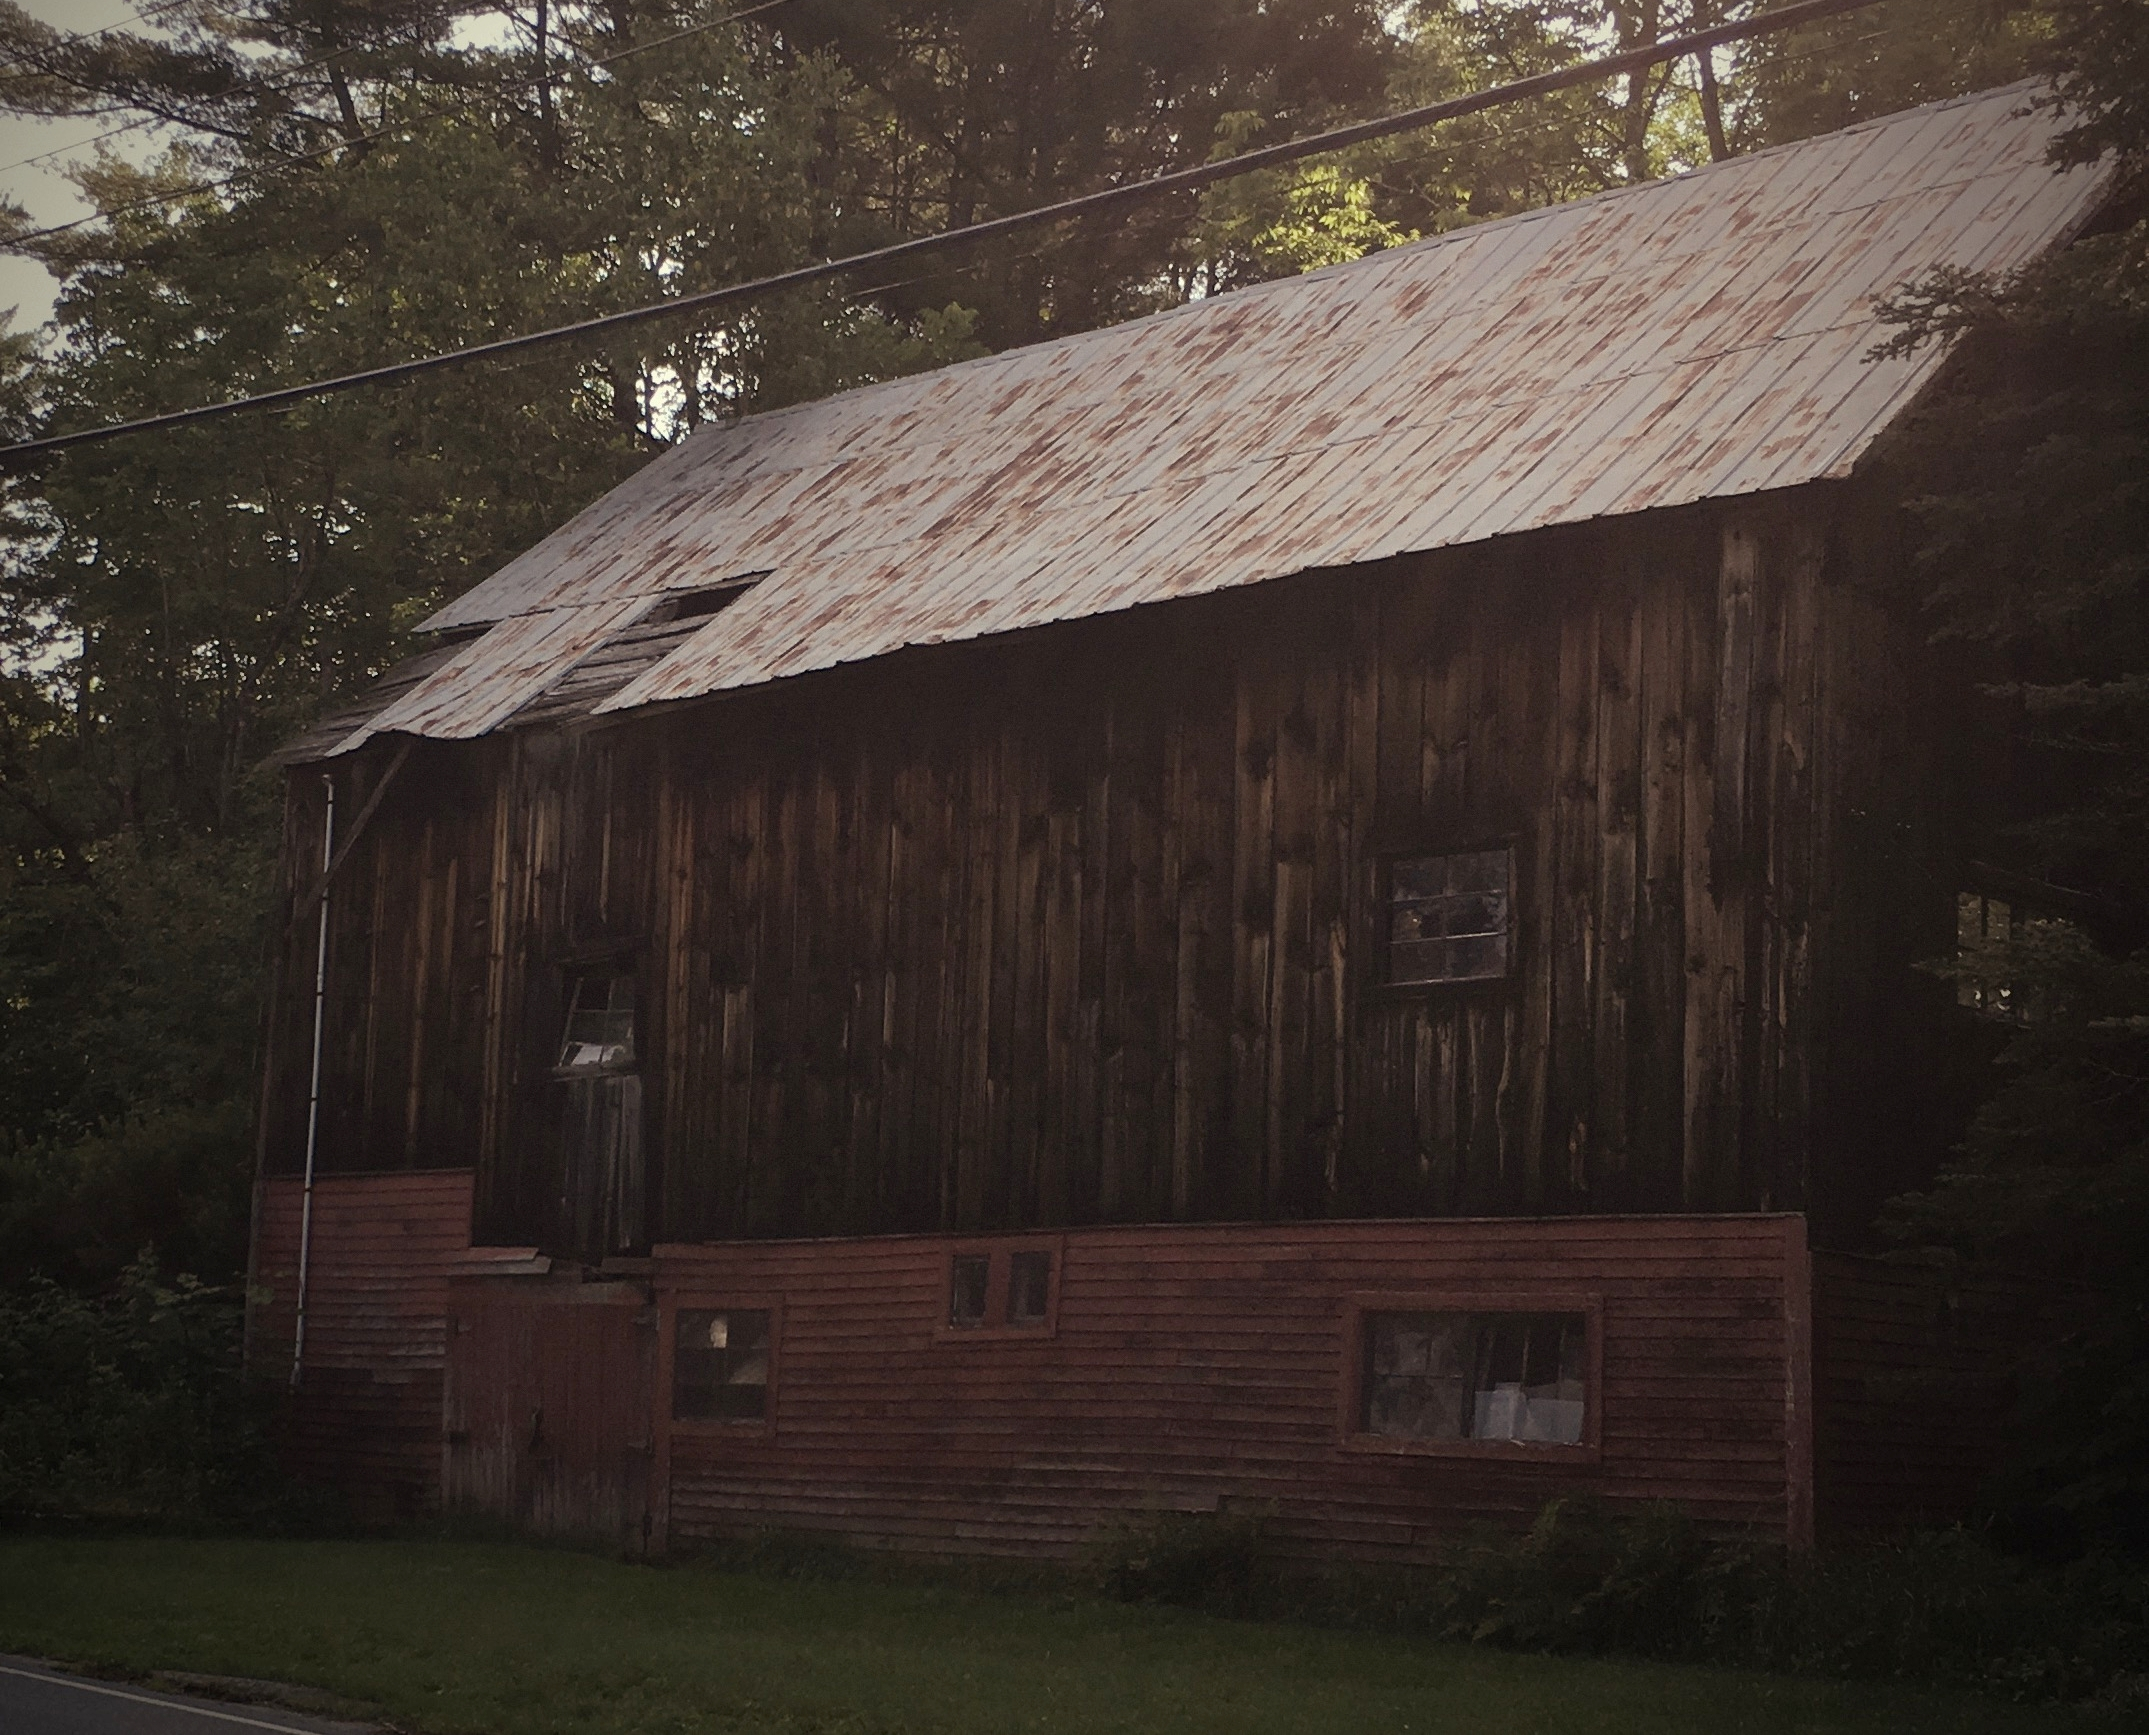 ©The Old Barn by Dena T Bray